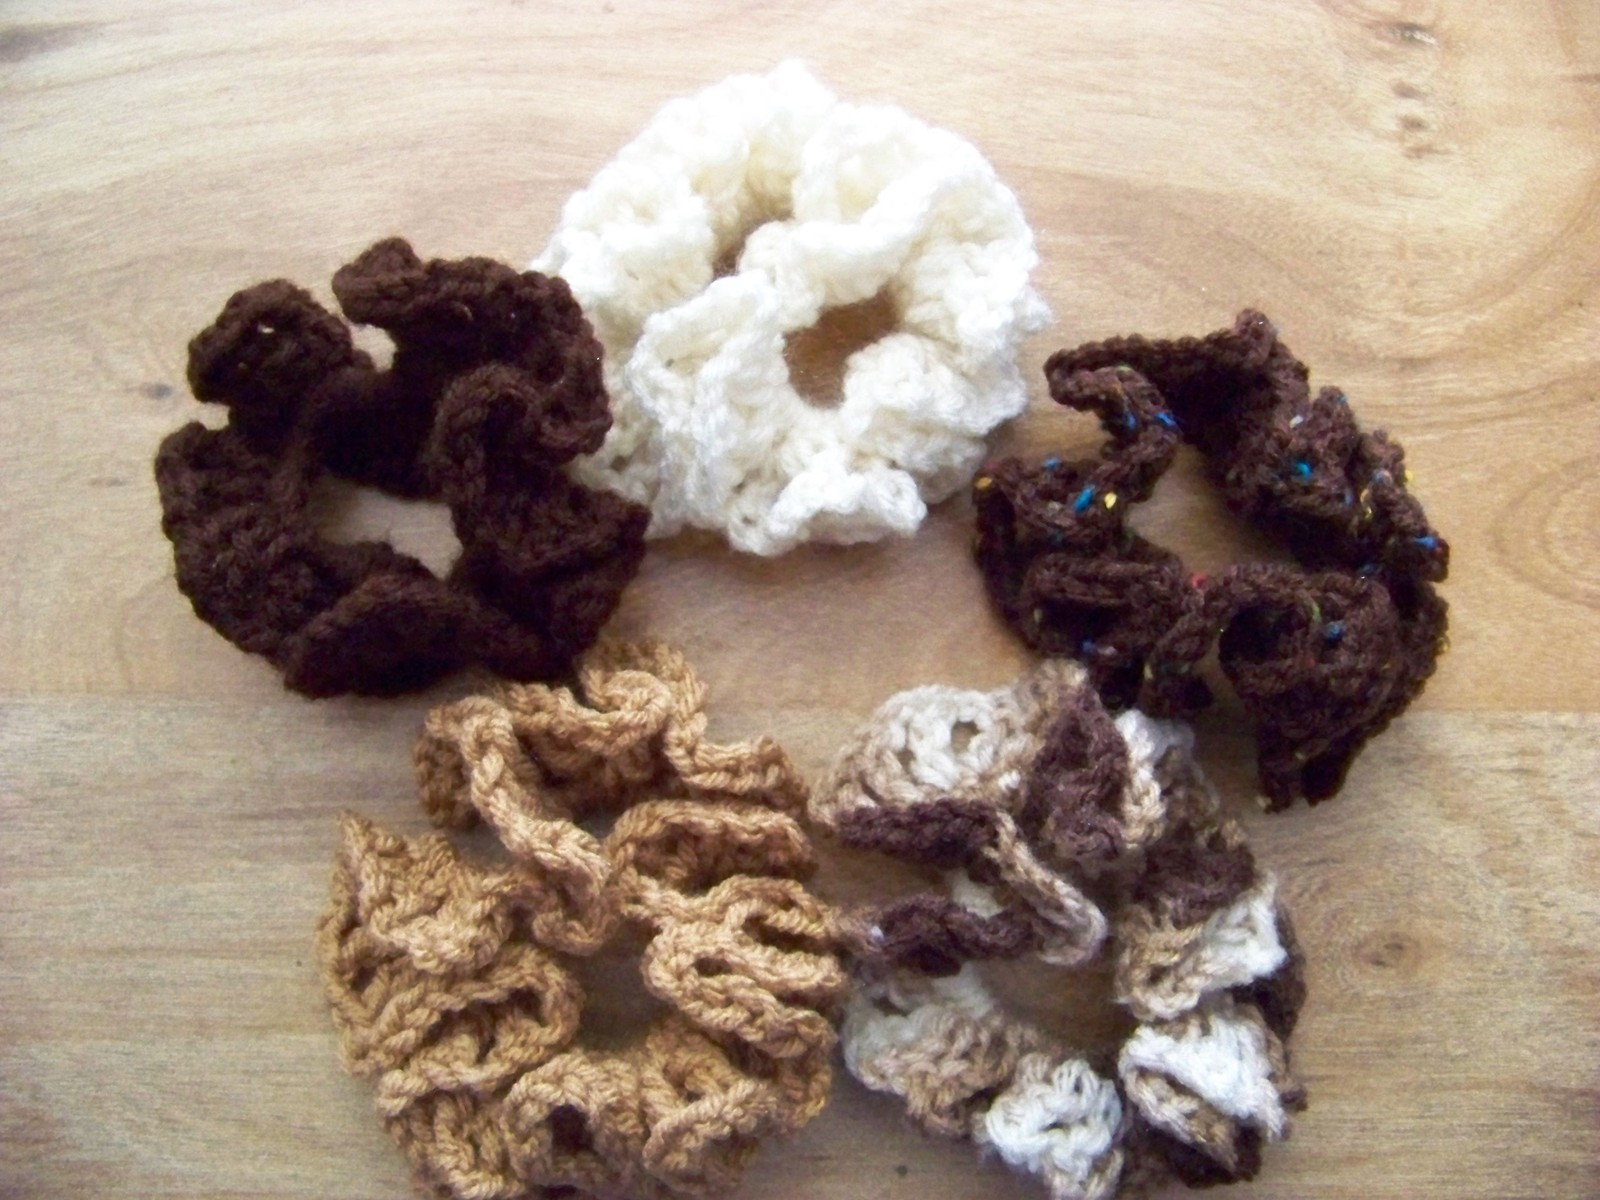 25.00$  Buy now - http://vihfd.justgood.pw/vig/item.php?t=o4vhflr53722 - 5 Hair Scrunches Hand Crocheted Shades of Browns Solids & Multi Colors (#6) 25.00$